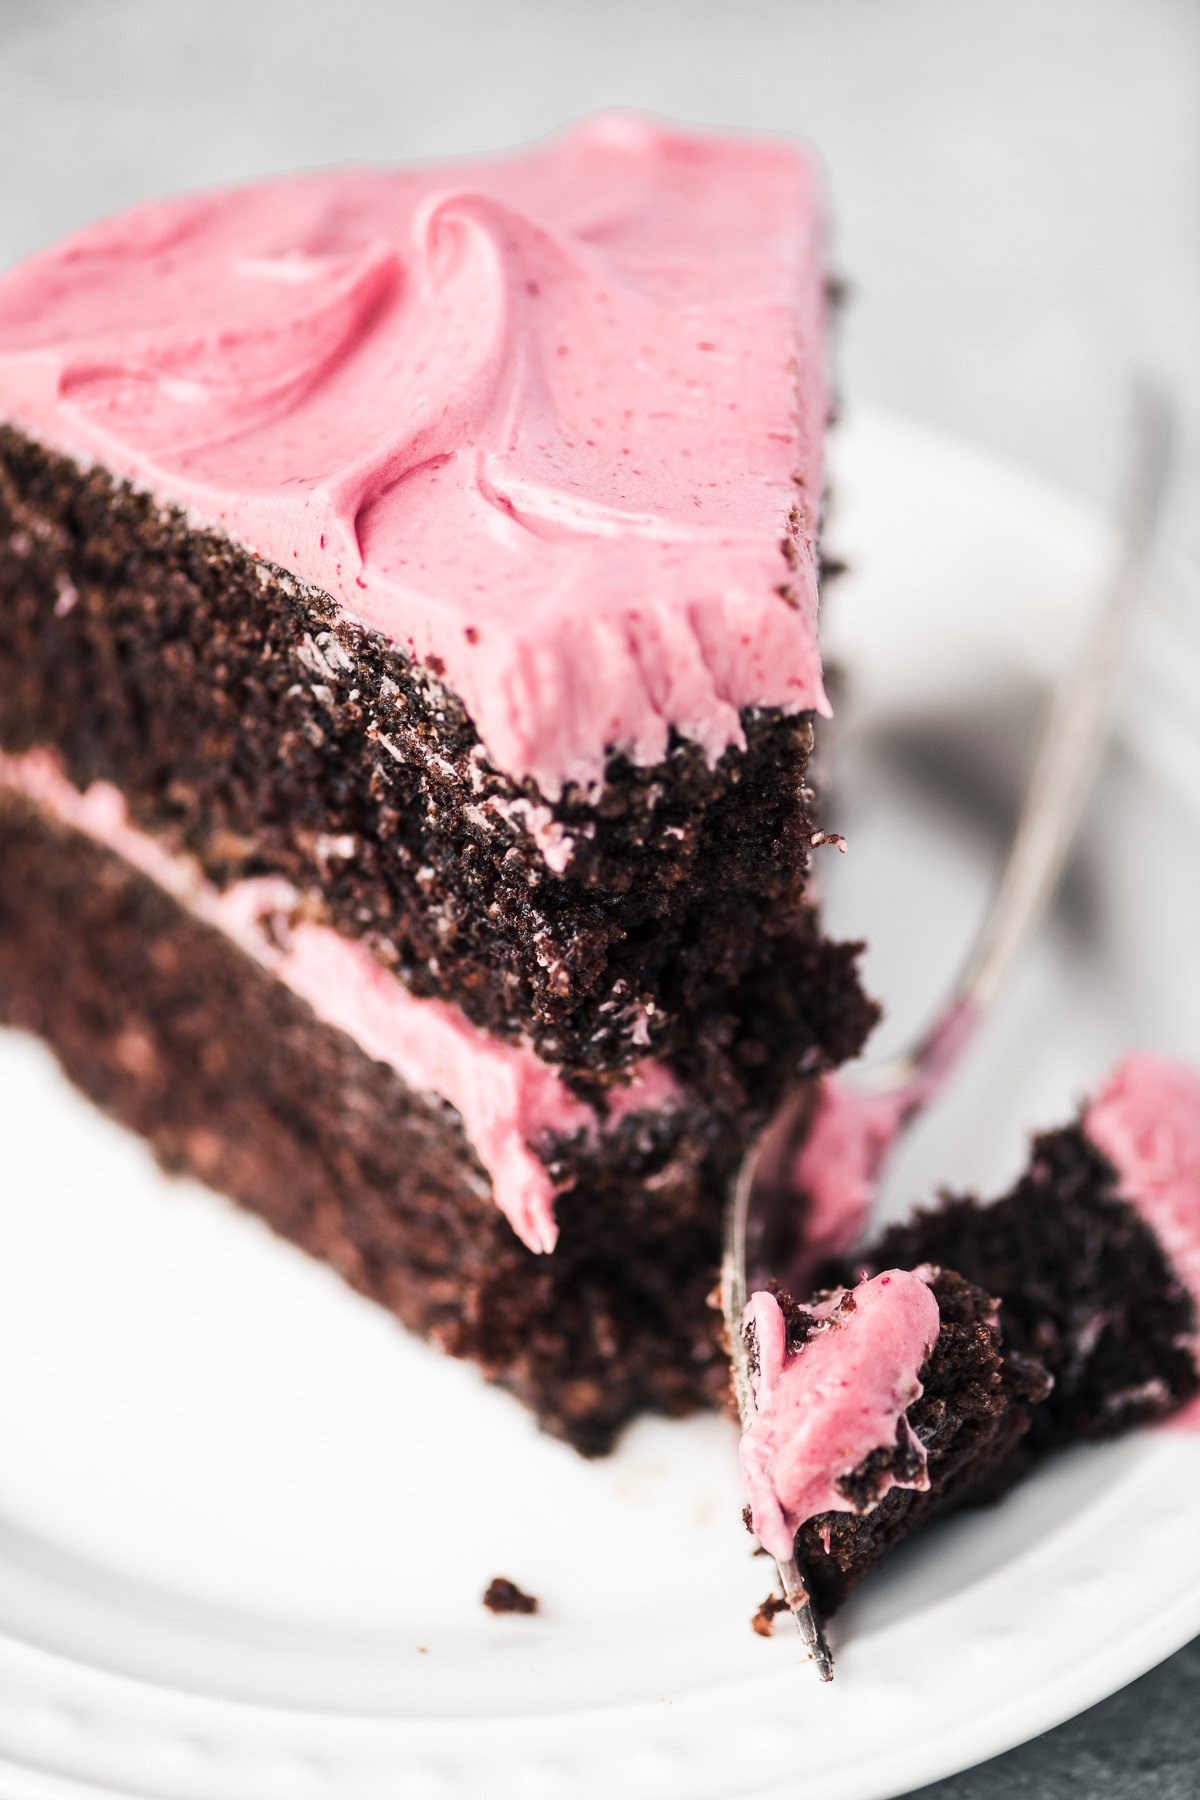 Taking a bite of chocolate cake with cranberry buttercream